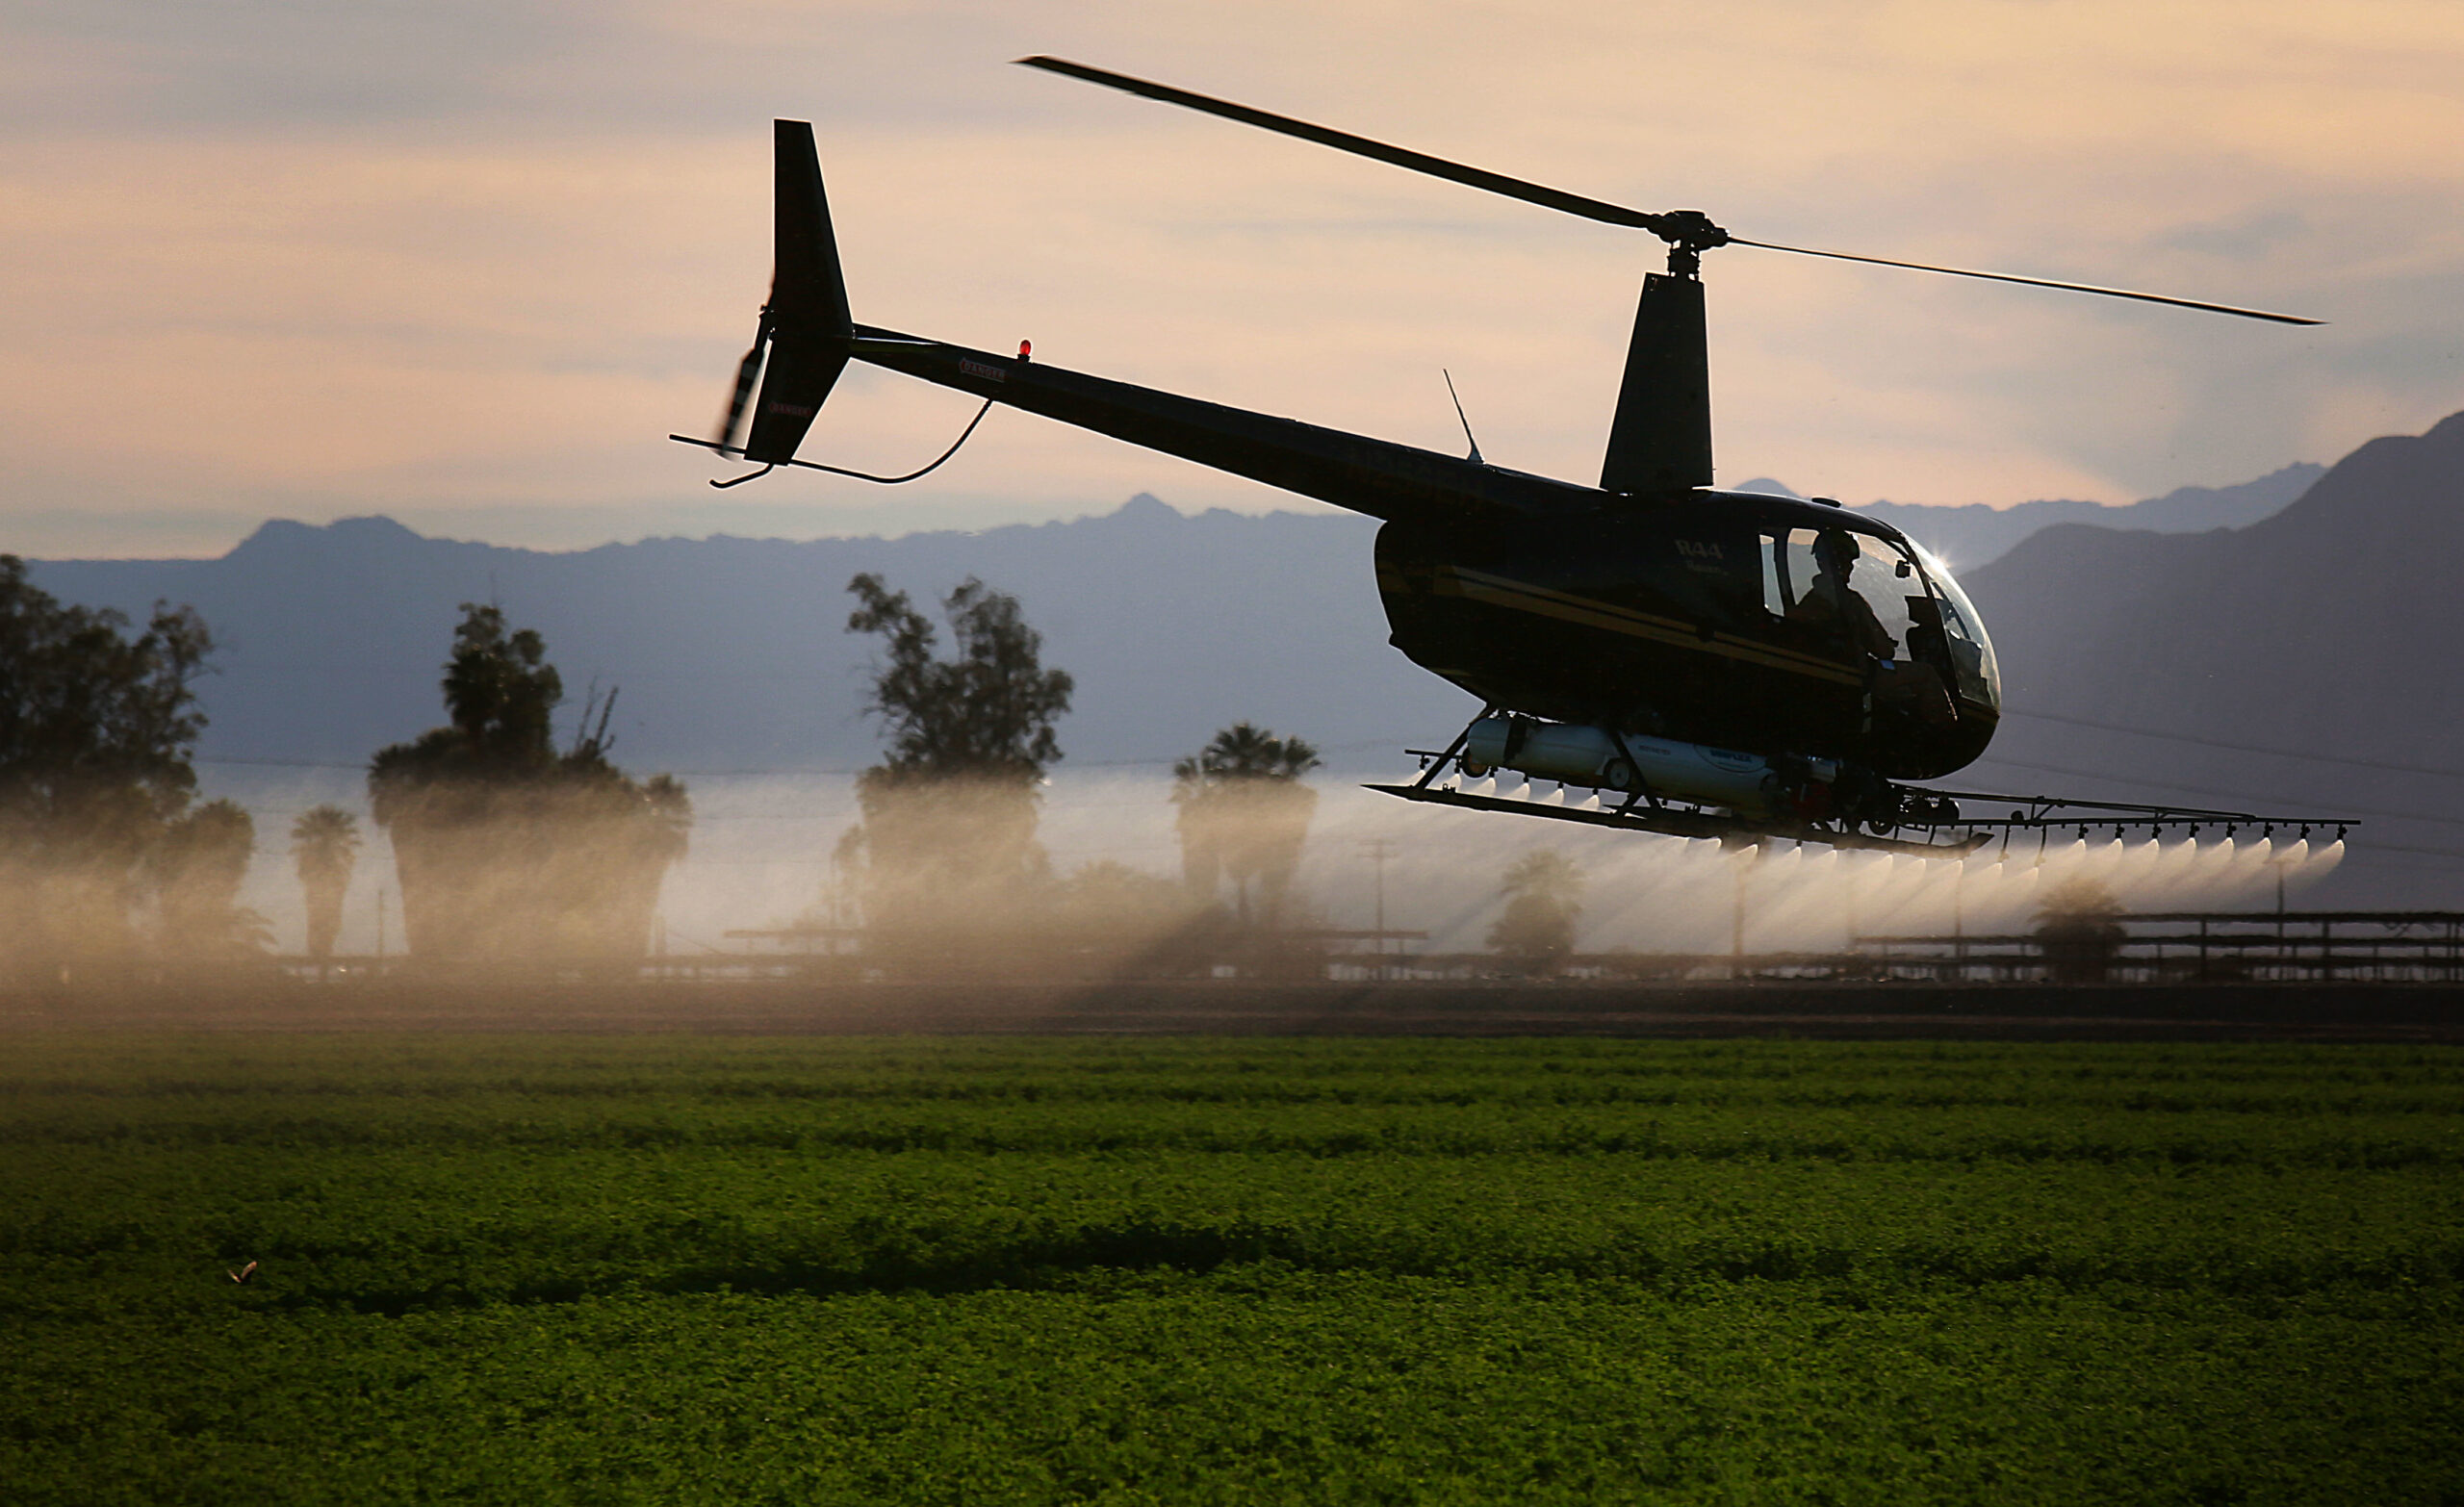 A helicopter sprays insecticide on a field outside of El Centro, California in the Imperial Valley on Wednesday, Feb. 11, 2015. Credit: Sandy Huffaker/Corbis via Getty Images